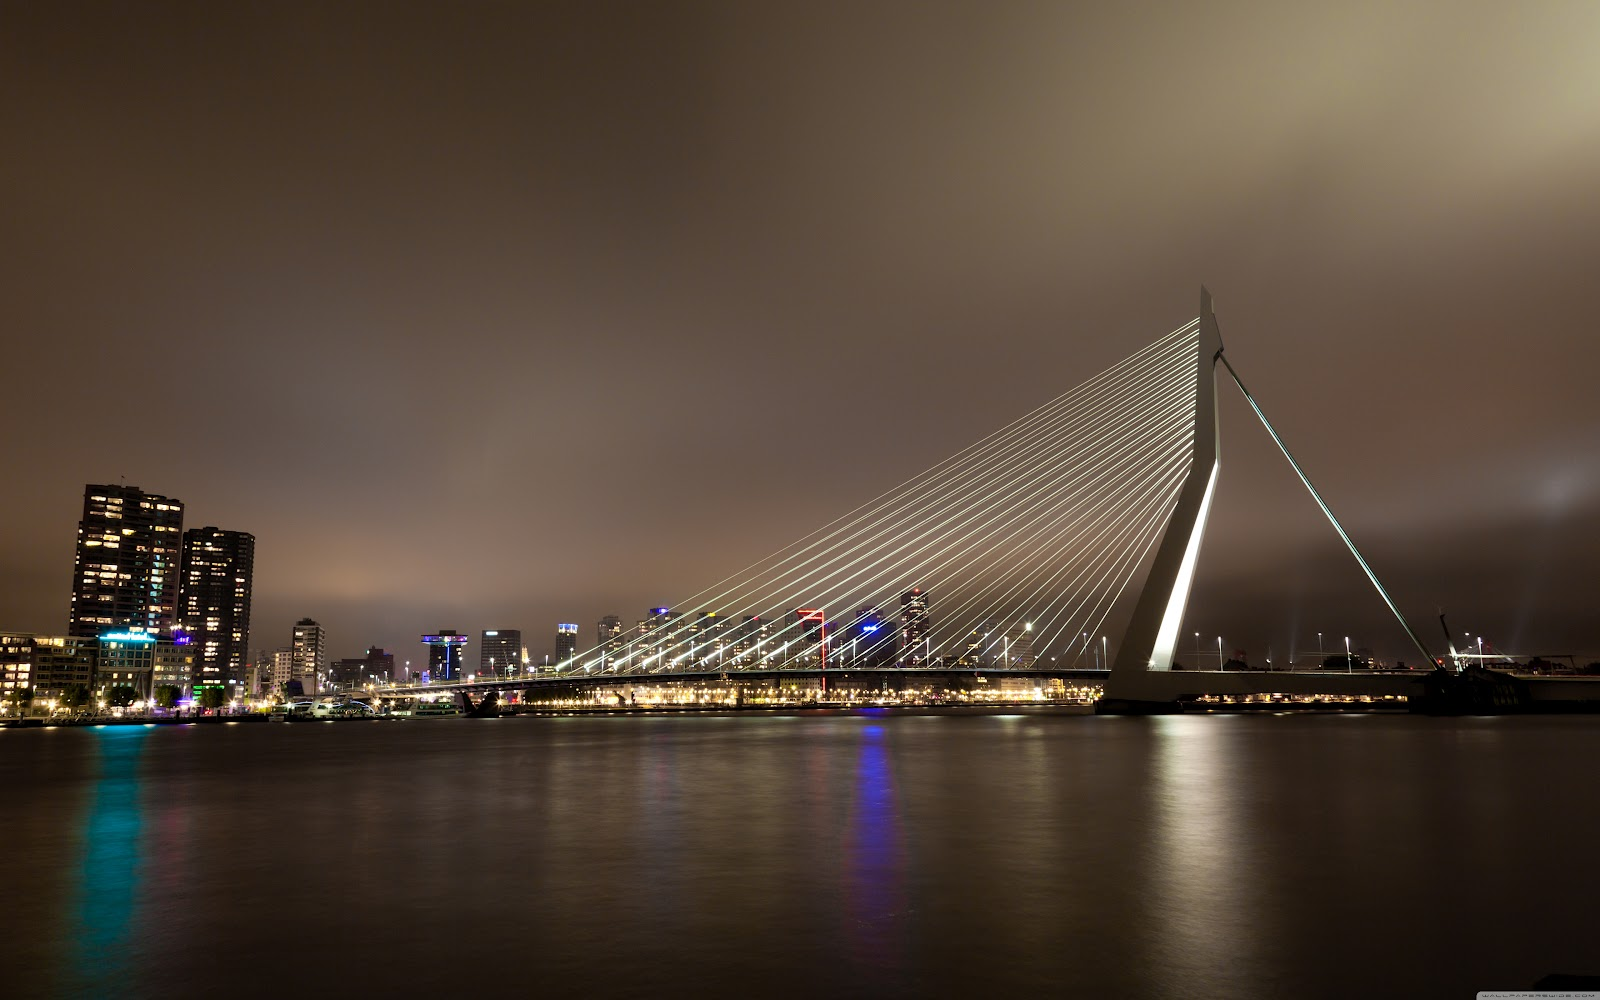 http://3.bp.blogspot.com/-lihuUWs1CPk/T4isjNGd2WI/AAAAAAAABUw/n7k4kAe2IpY/s1600/erasmus_bridge_rotterdam_the_netherlands-wallpaper-5120x3200.jpg